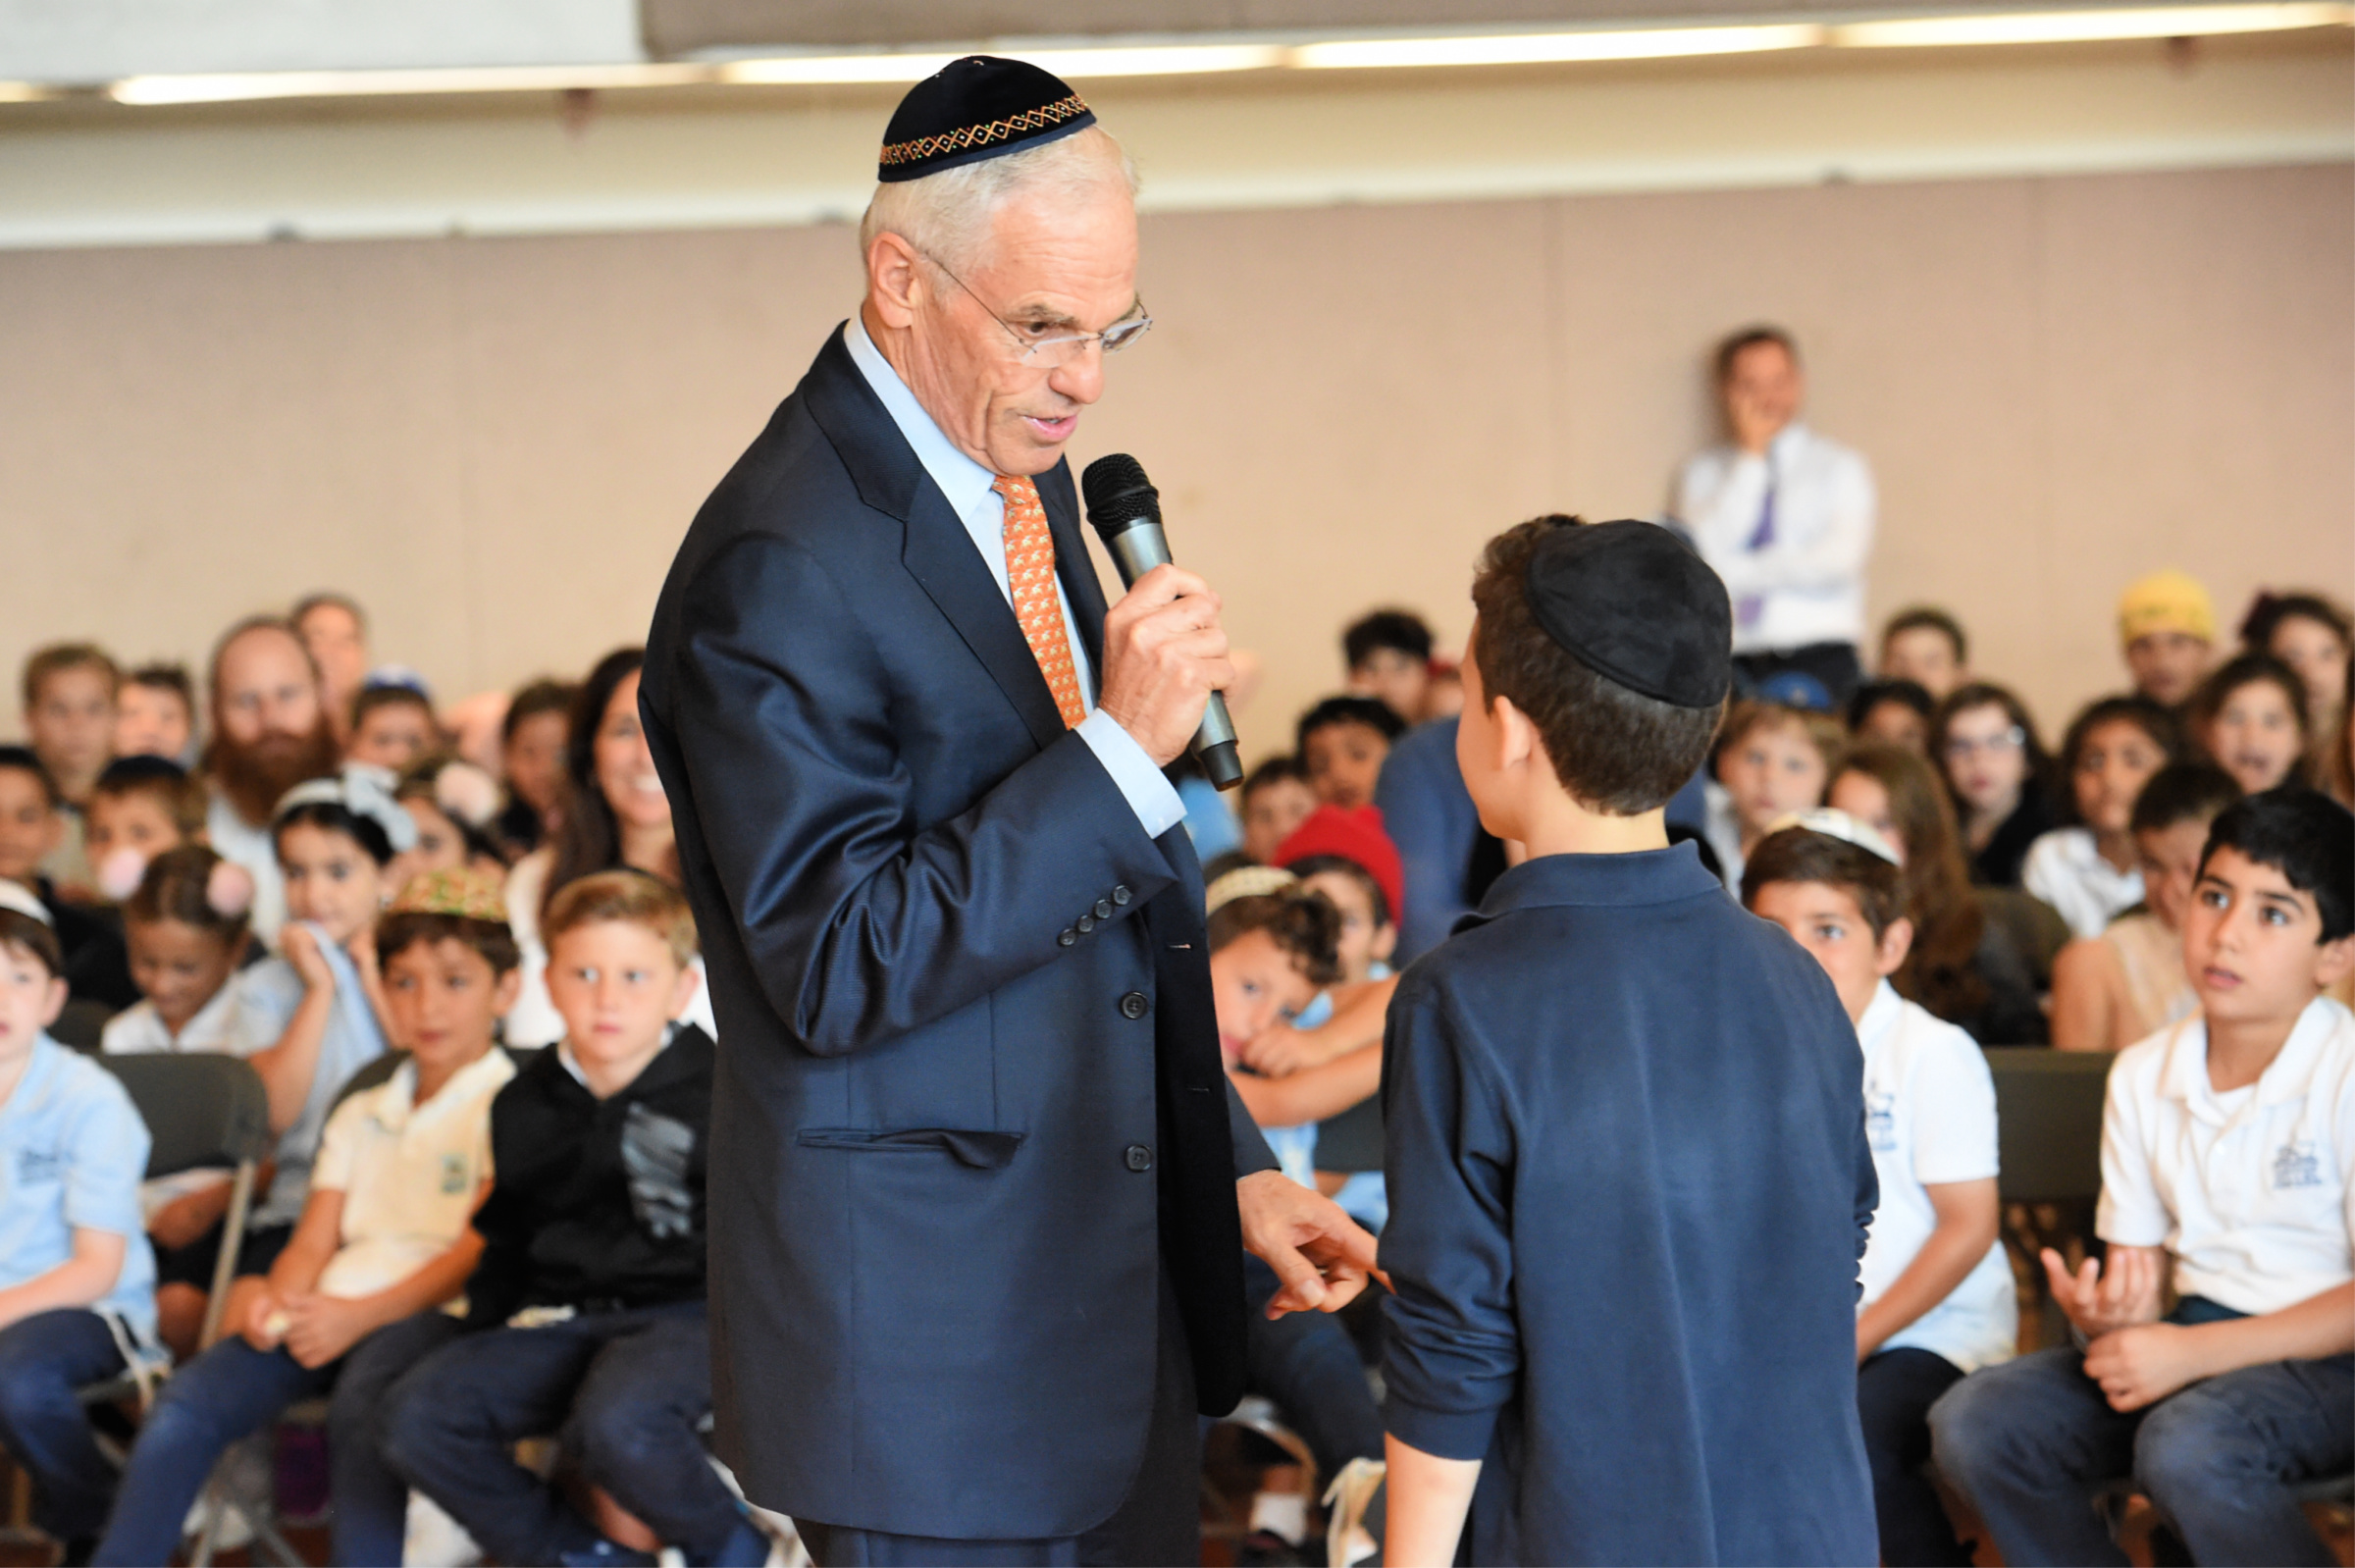 Florette Benhamou Notification Richard Sandler, executive vice president of the Milken Family Foundation, lets the students and staff in on a secret: One Harkham Hillel teacher is about to receive a very important award!